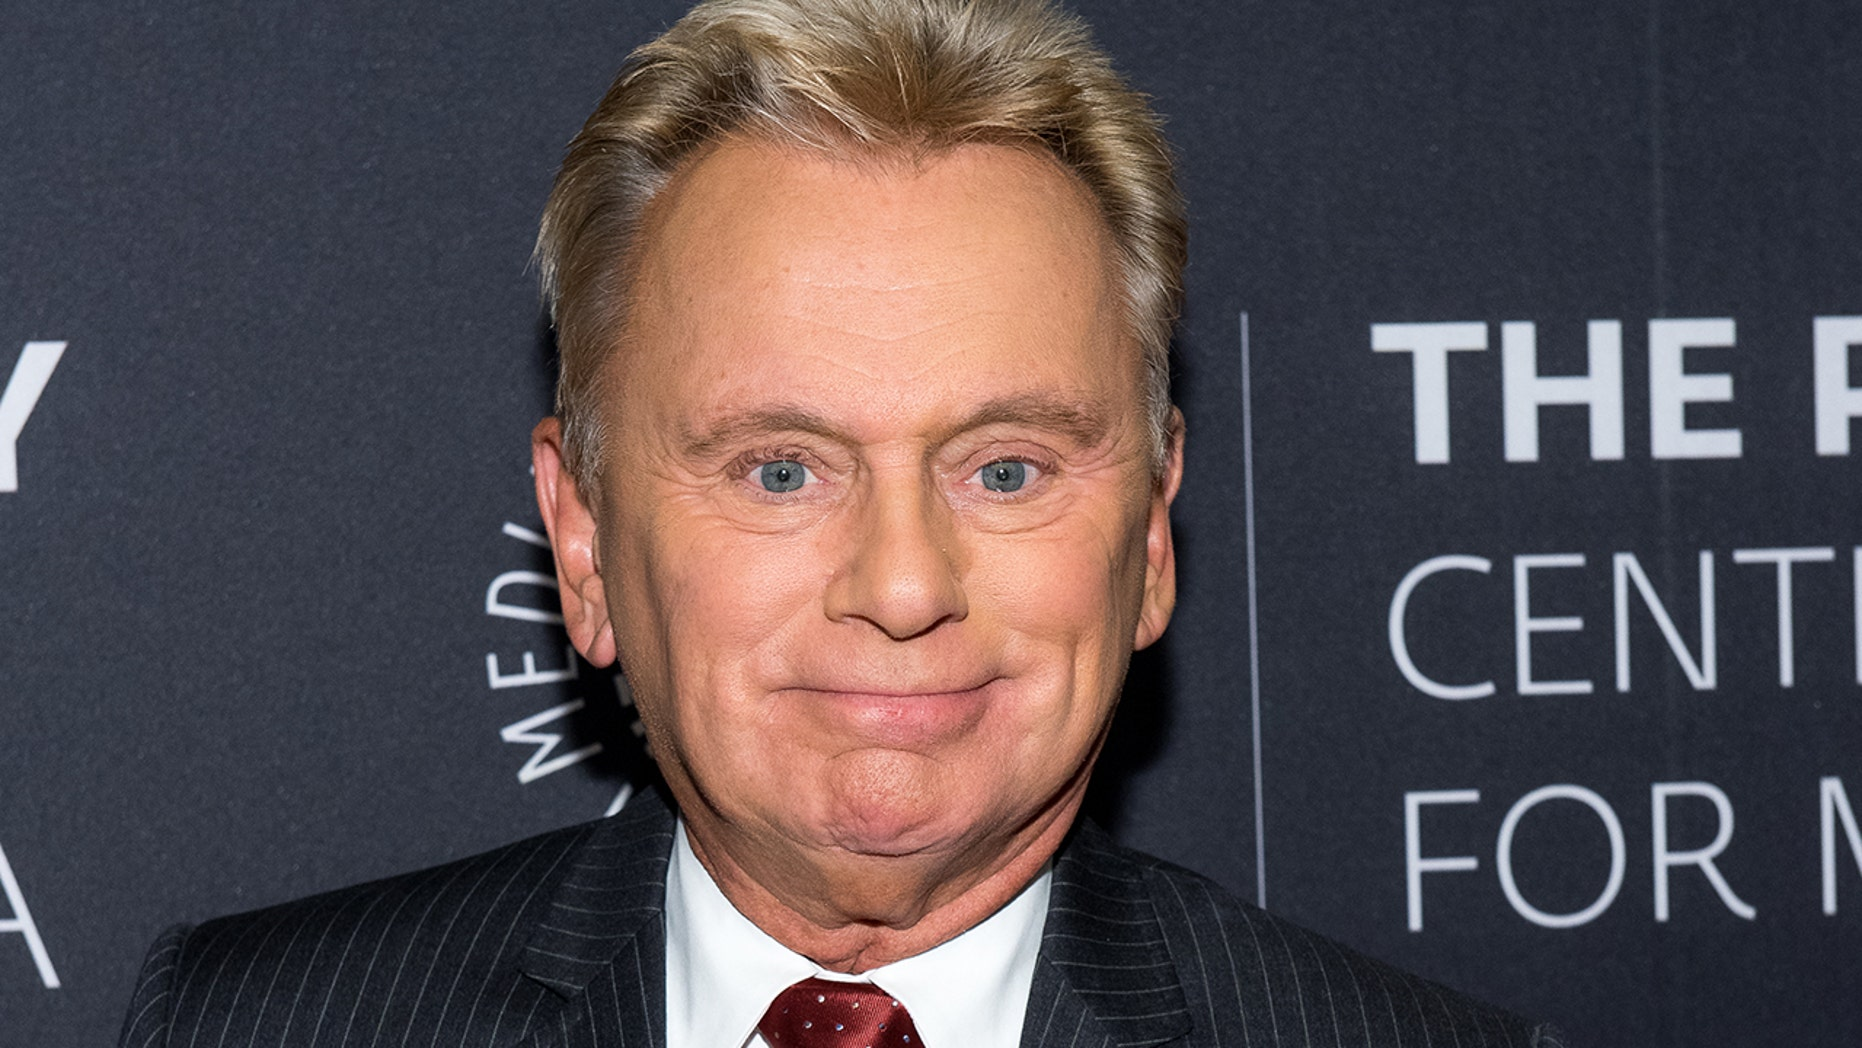 Pat Sajak joked about not wanting people to vote in the November elections.